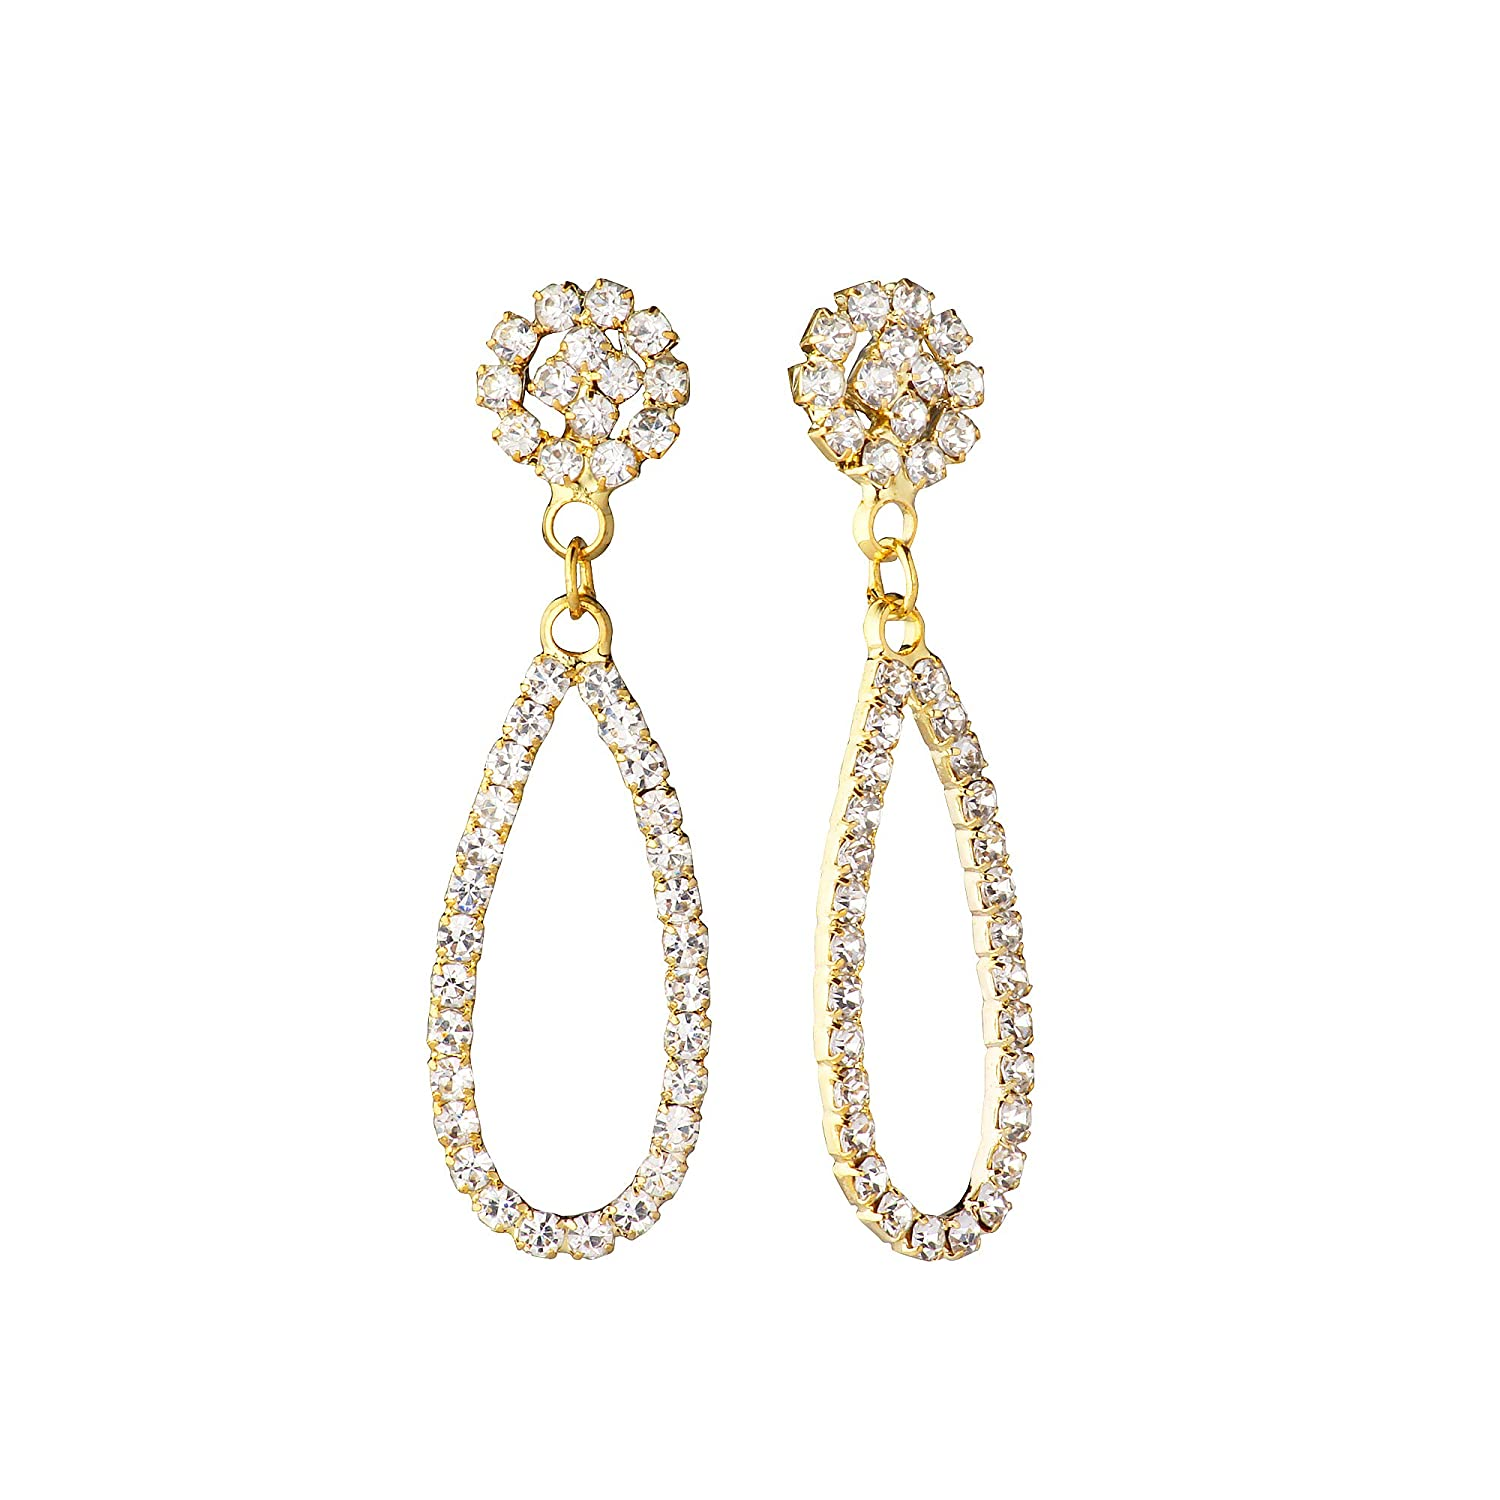 88b500c51 Buy Shining Jewel Elegant Gold Plated Crystal CZ American Diamond Dangle  Drop Designer Earrings for Women, Girls (SJ_1123) Online at Low Prices in  India ...